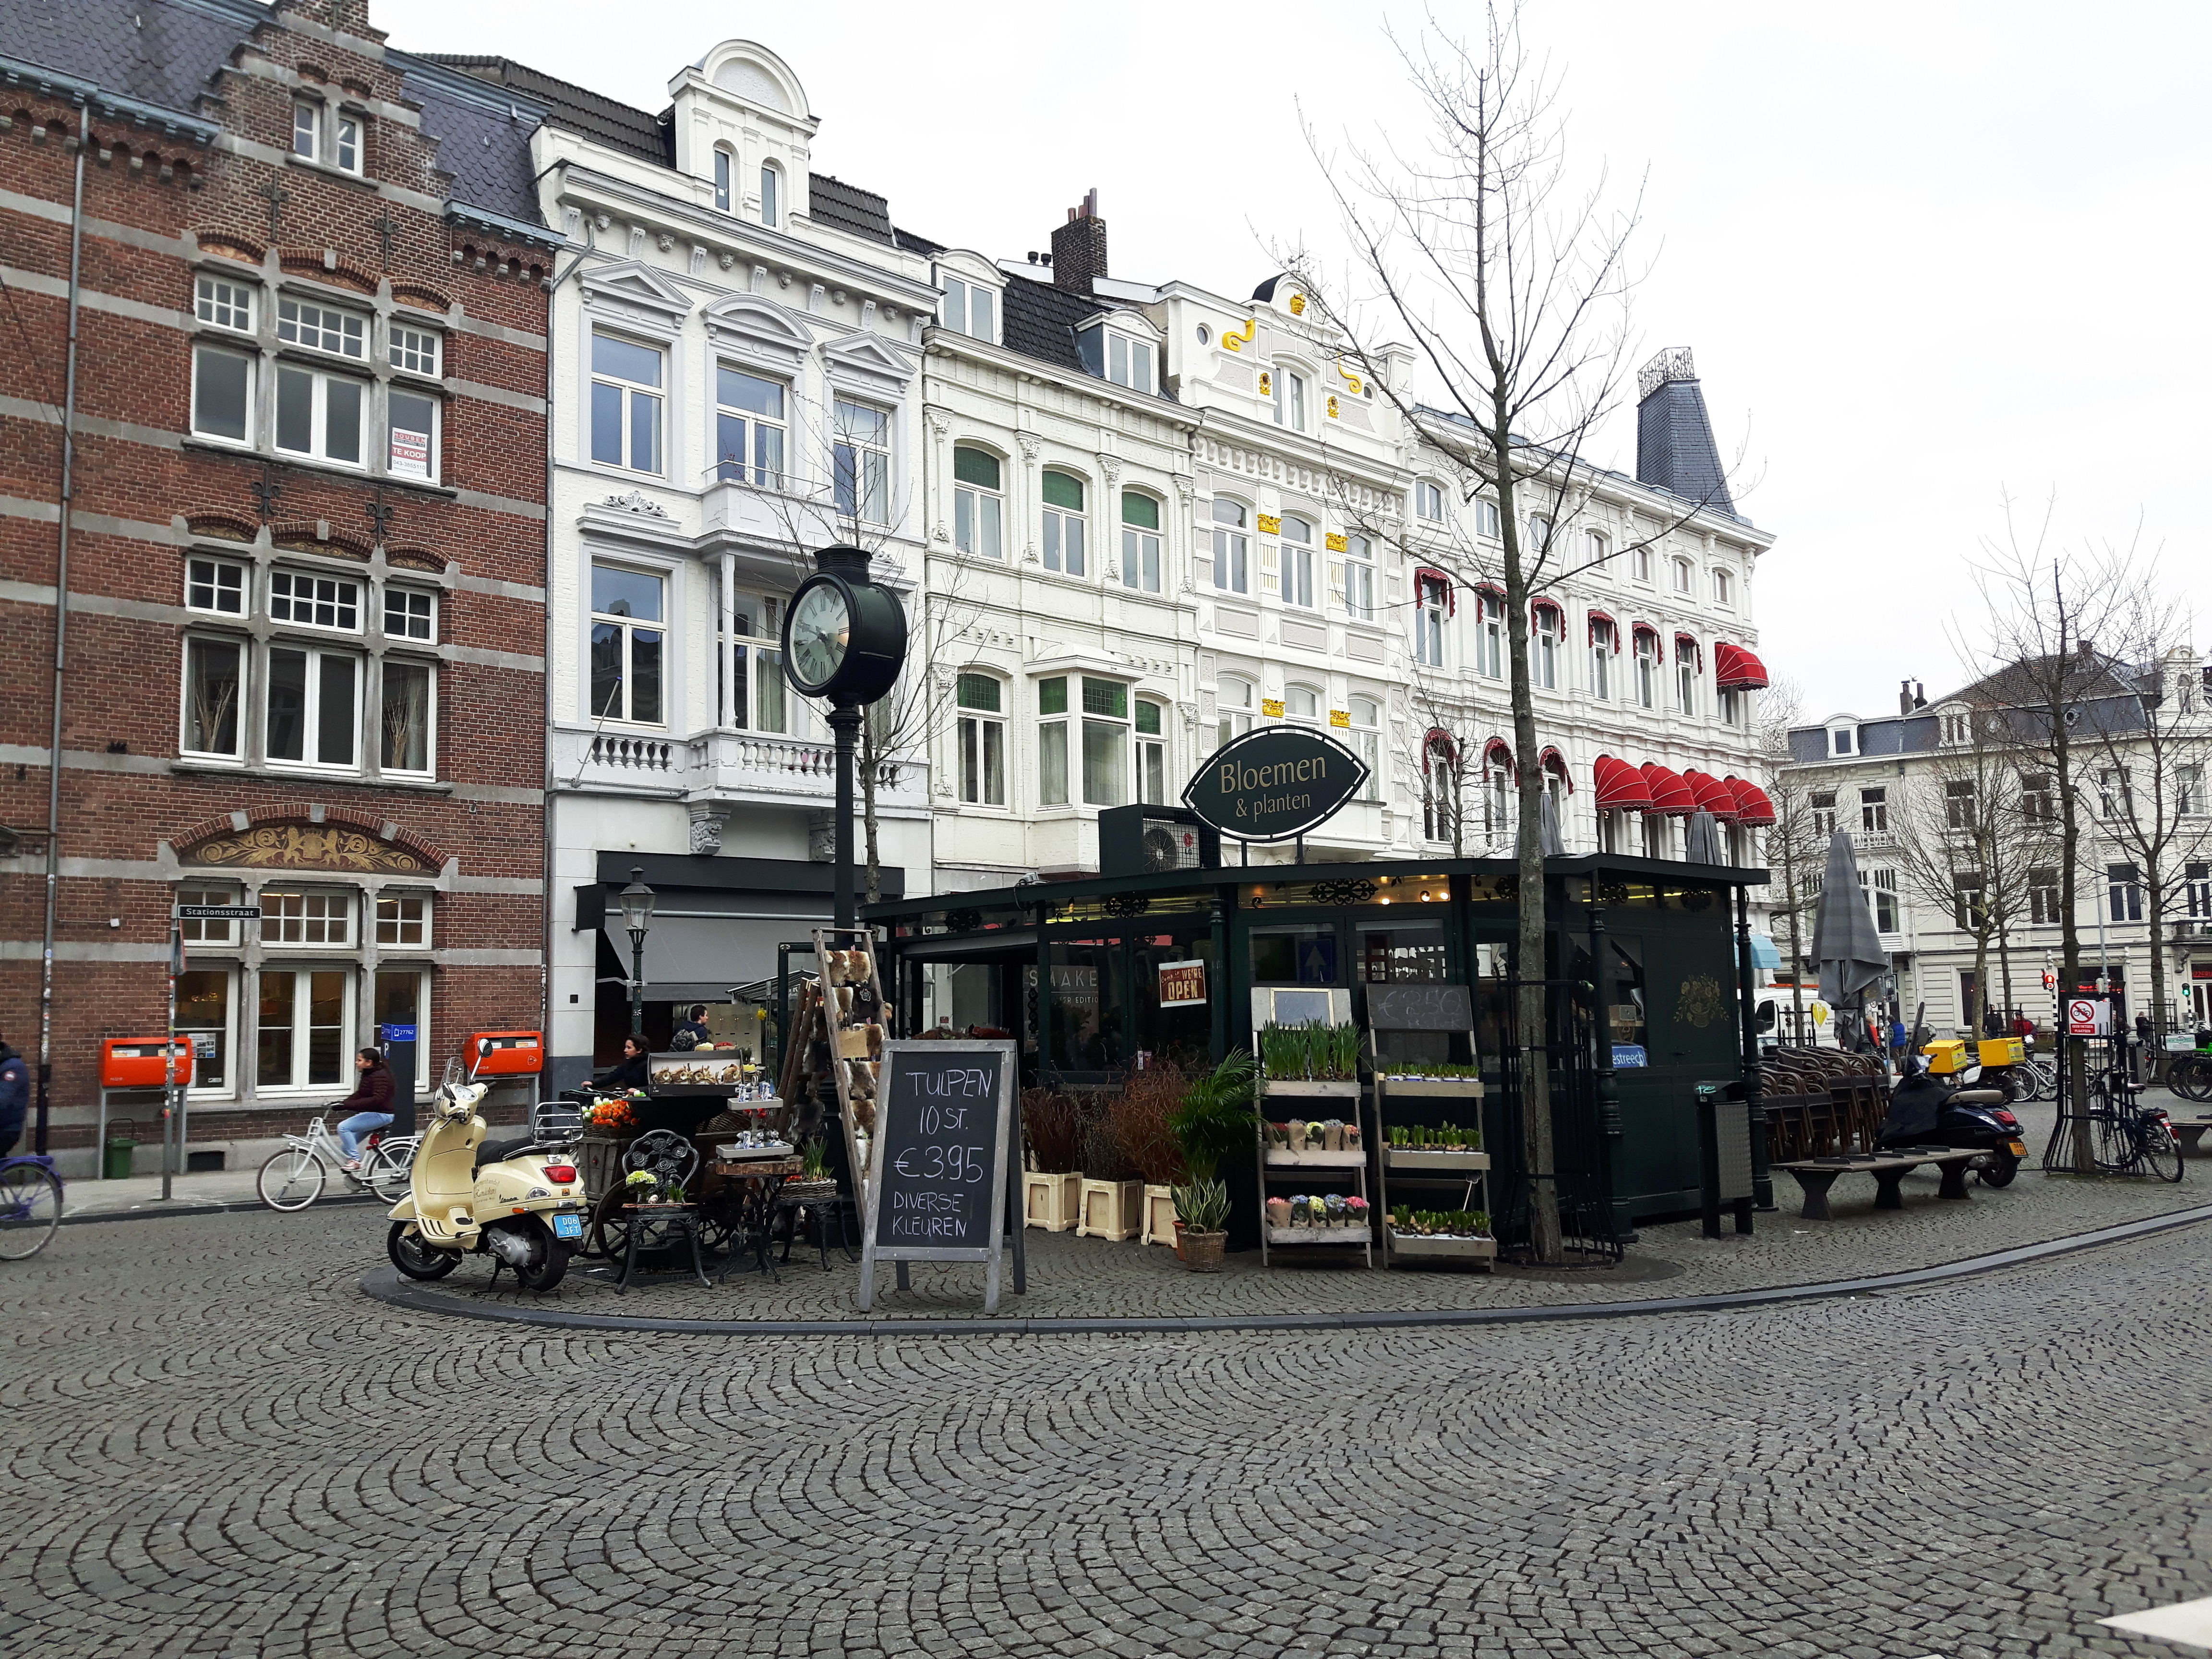 City_Guide_To_Maastricht_Netherlands